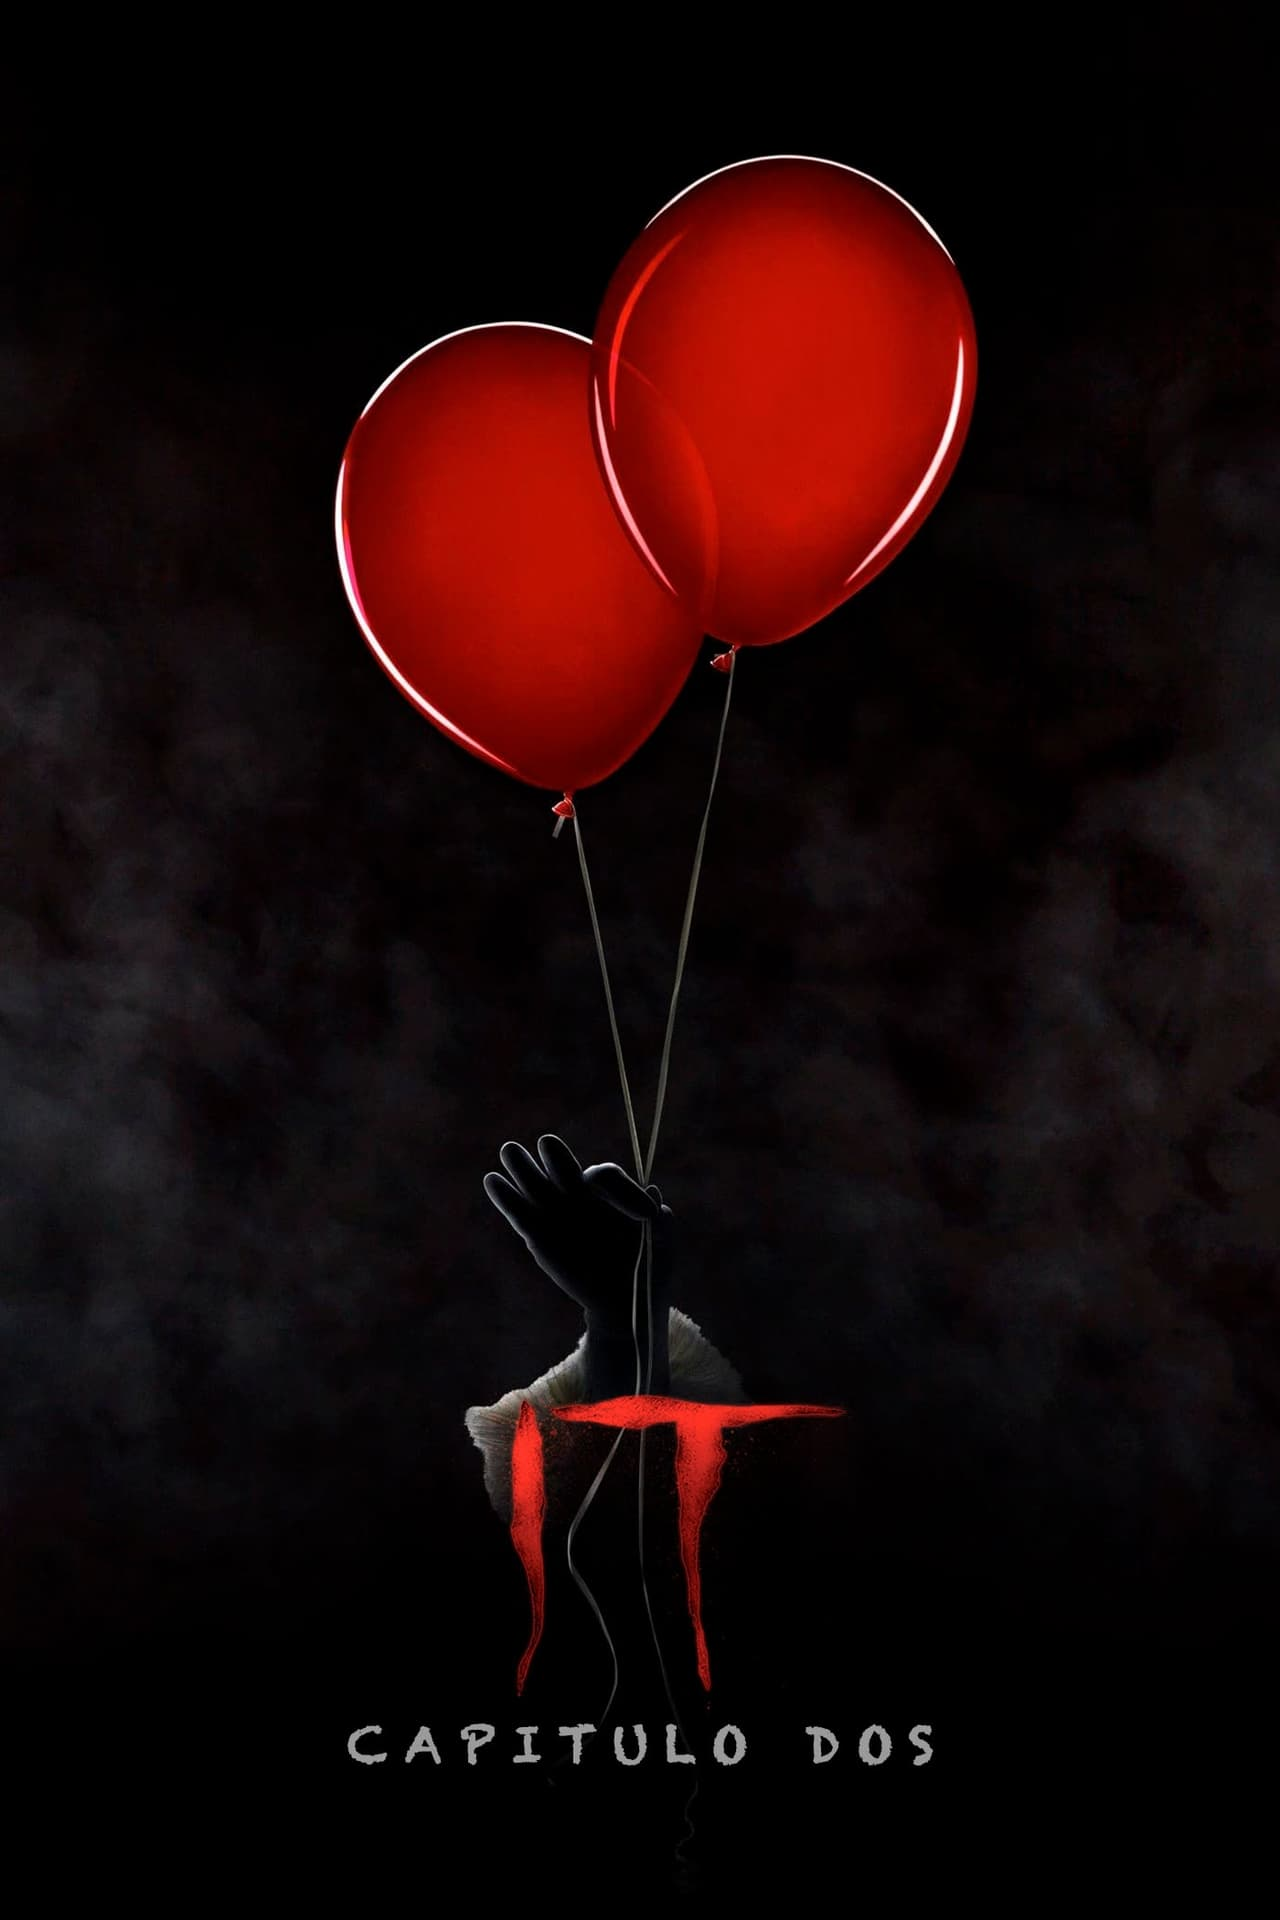 Prime wire it chapter two 720p dvdrip full movie download sub indo